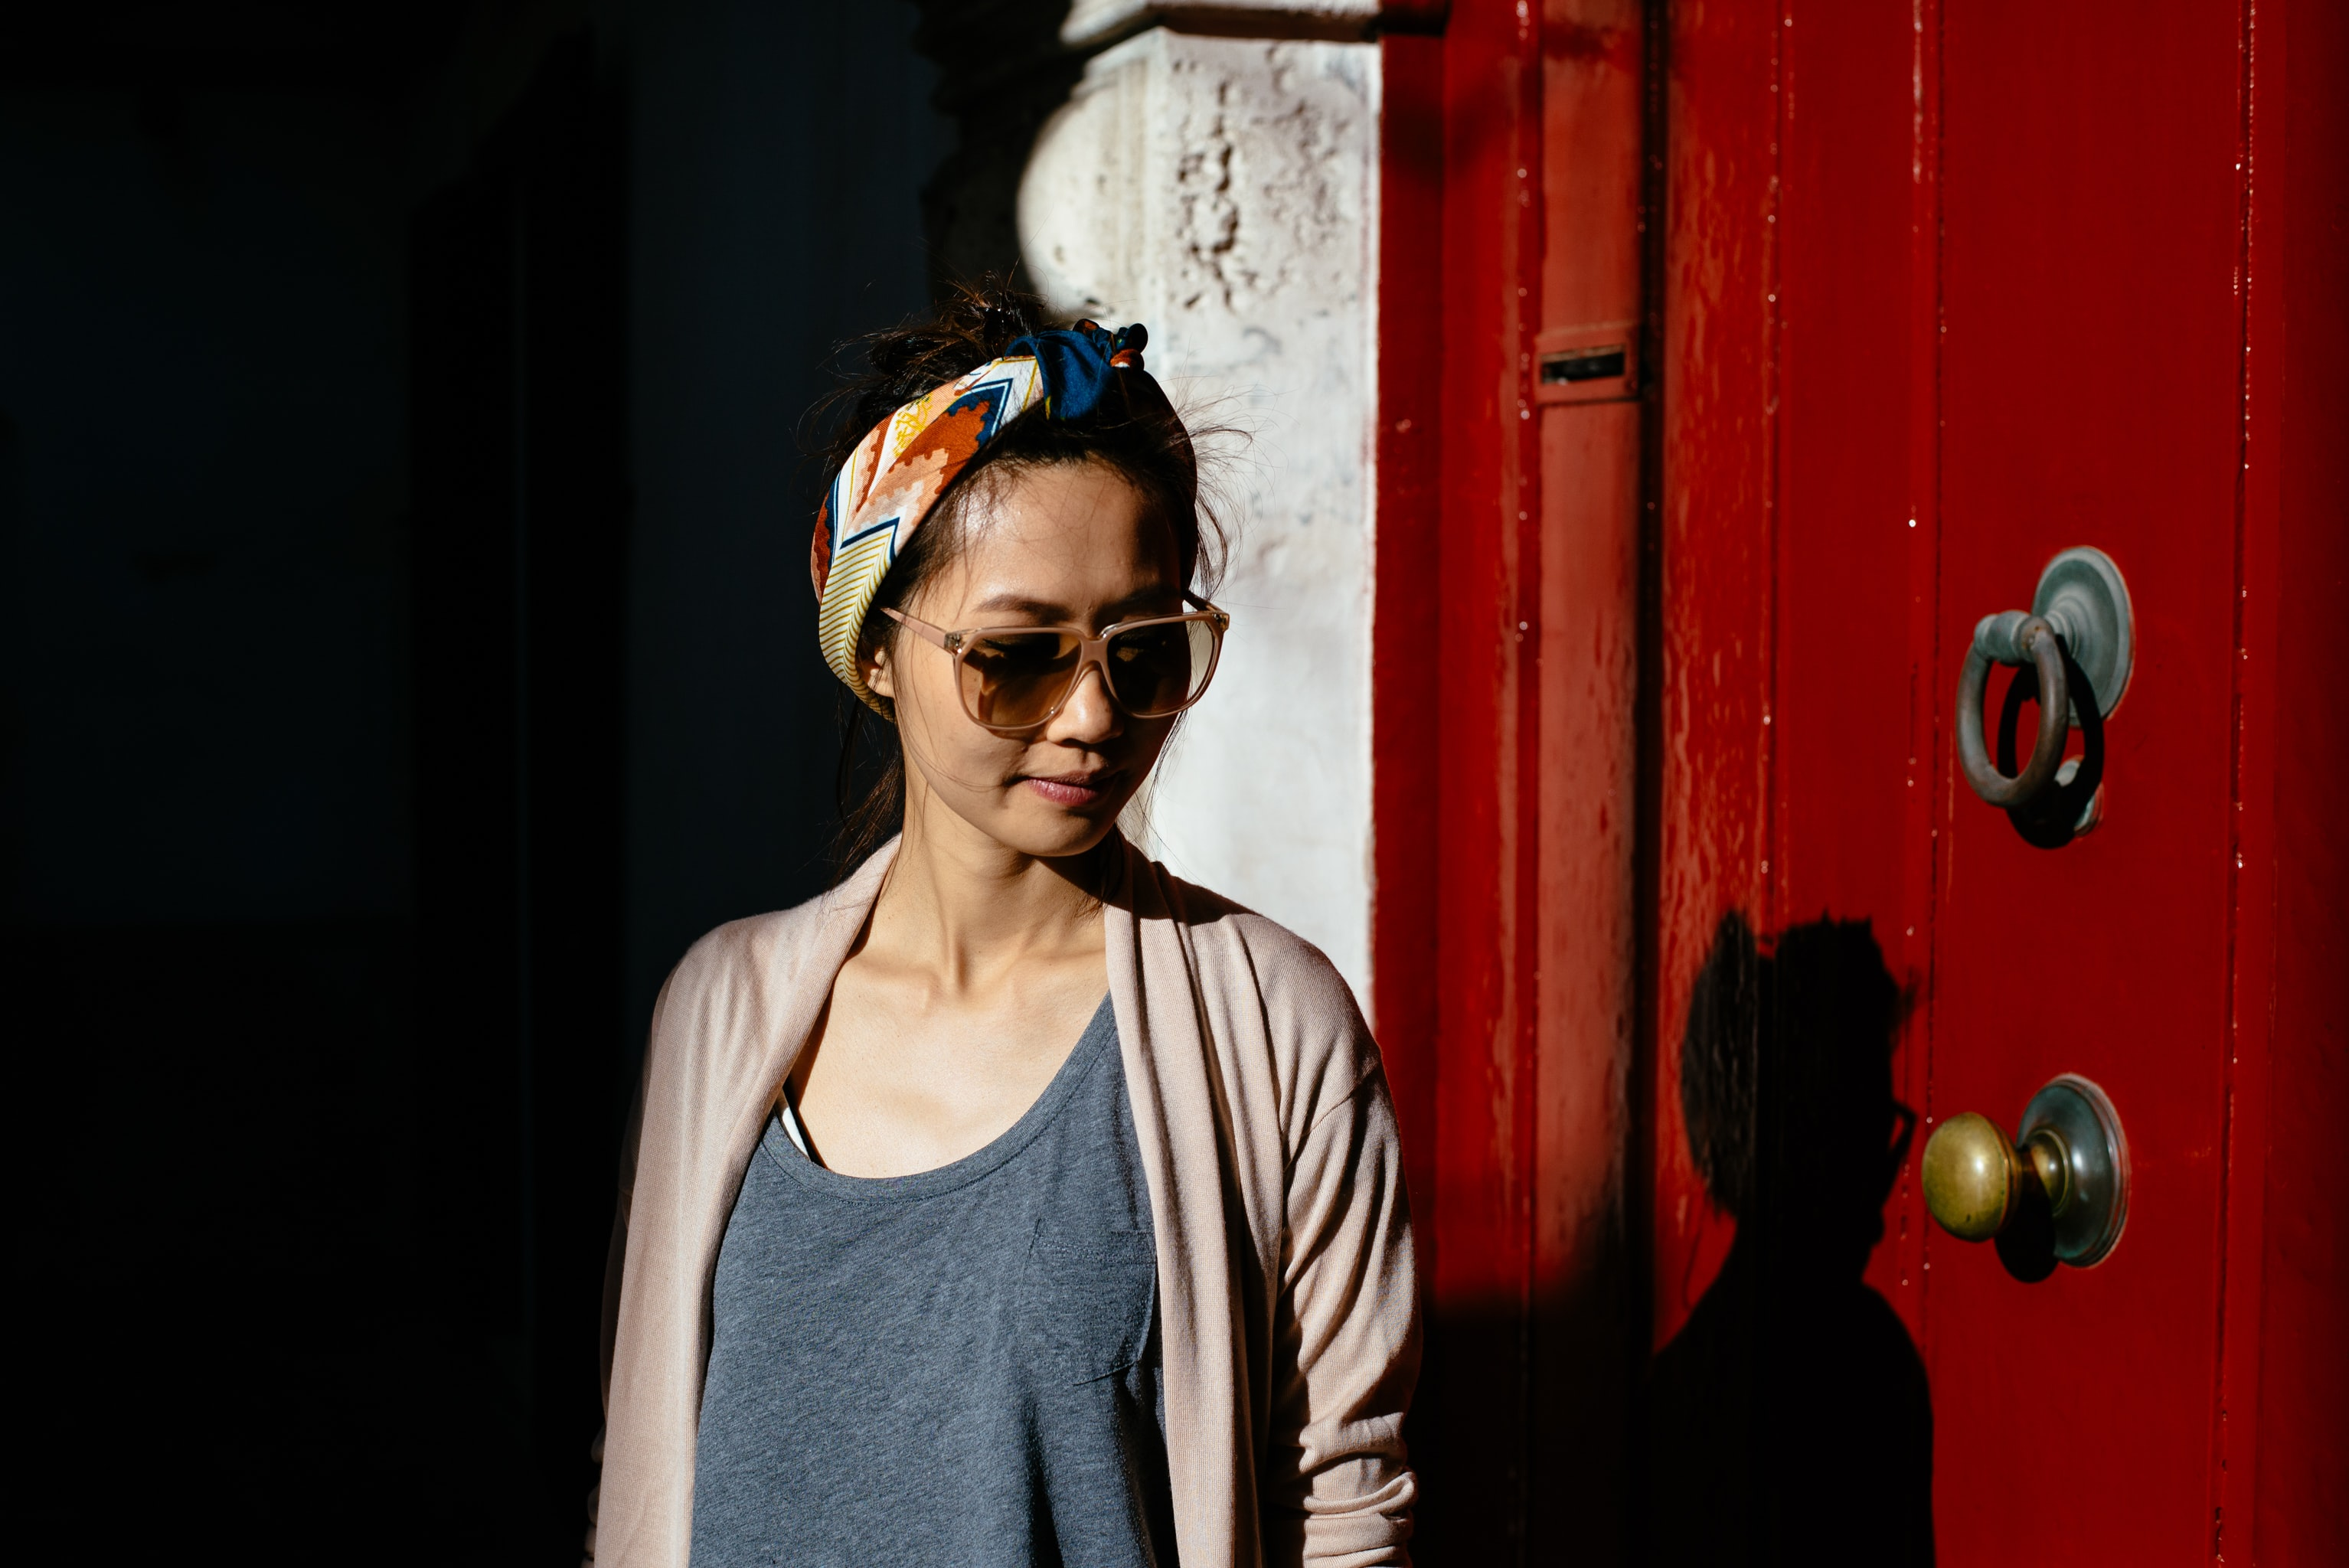 A woman wearing a hairband and sunglasses has her shadow cast on the red wooden door.